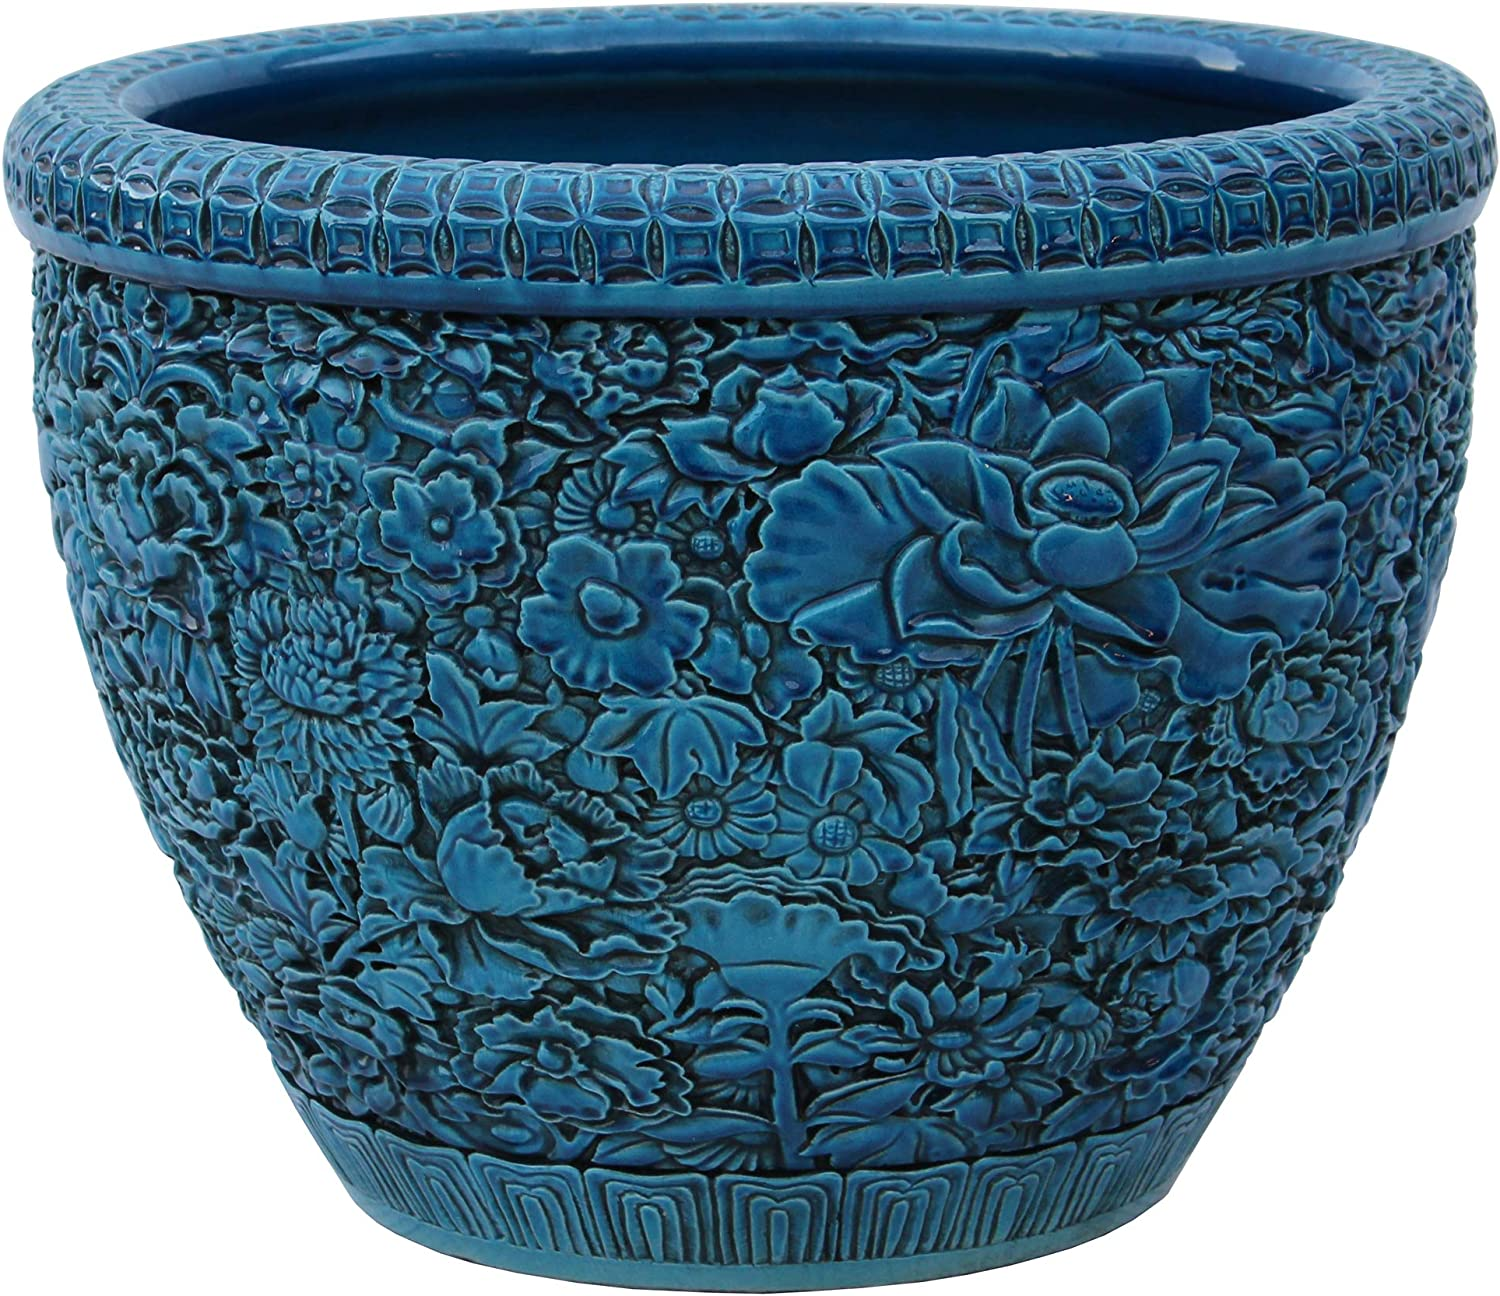 Amazon Com Orientliving Chinese Ceramic Blossom Flowers Relief Motif Bright Blue Color Pot Planter Acs4729 Home Kitchen